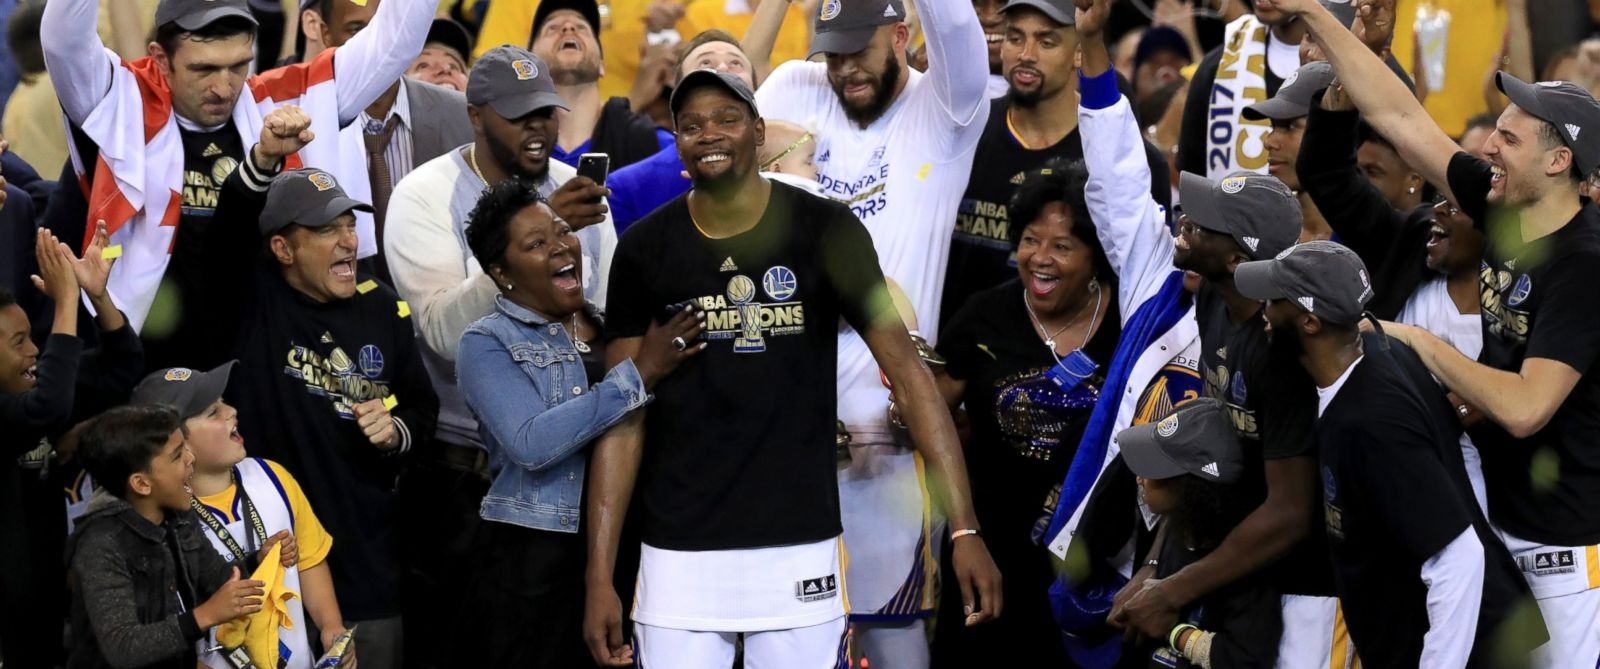 PHOTO: Kevin Durant of the Golden State Warriors celebrates with his mother Wanda, after defeating the Cleveland Cavaliers 129-120 in Game 5 to win the 2017 NBA Finals at ORACLE Arena, June 12, 2017, in Oakland, Calif.